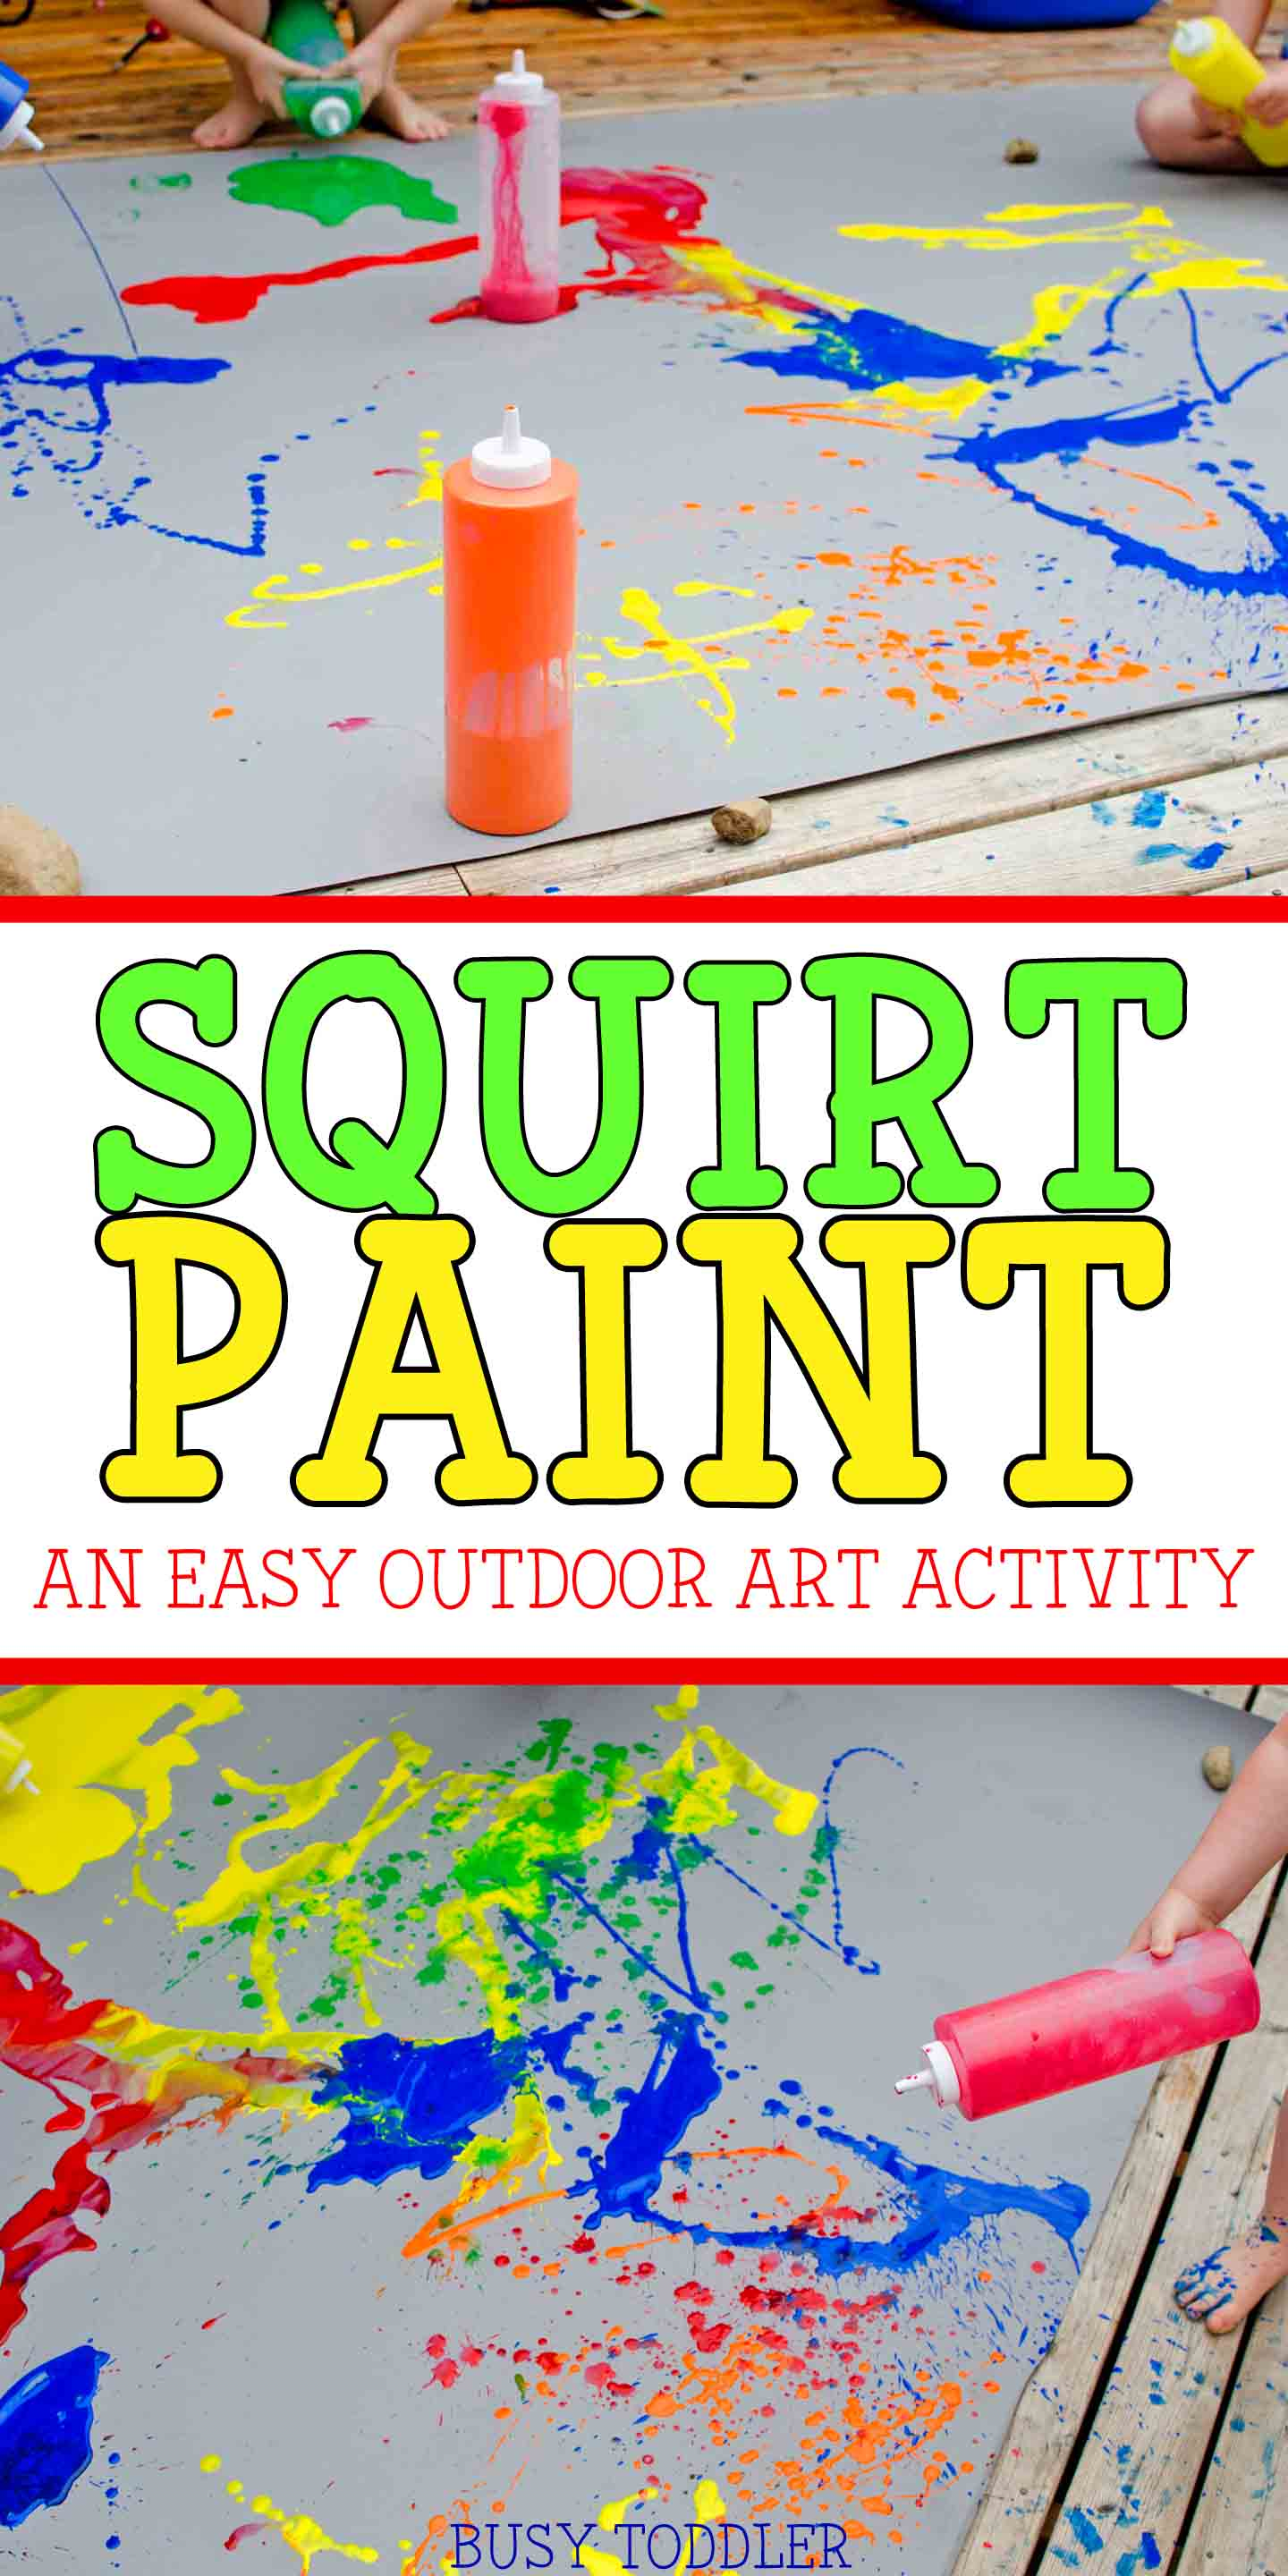 Squirt Paint Process Art - Busy Toddler